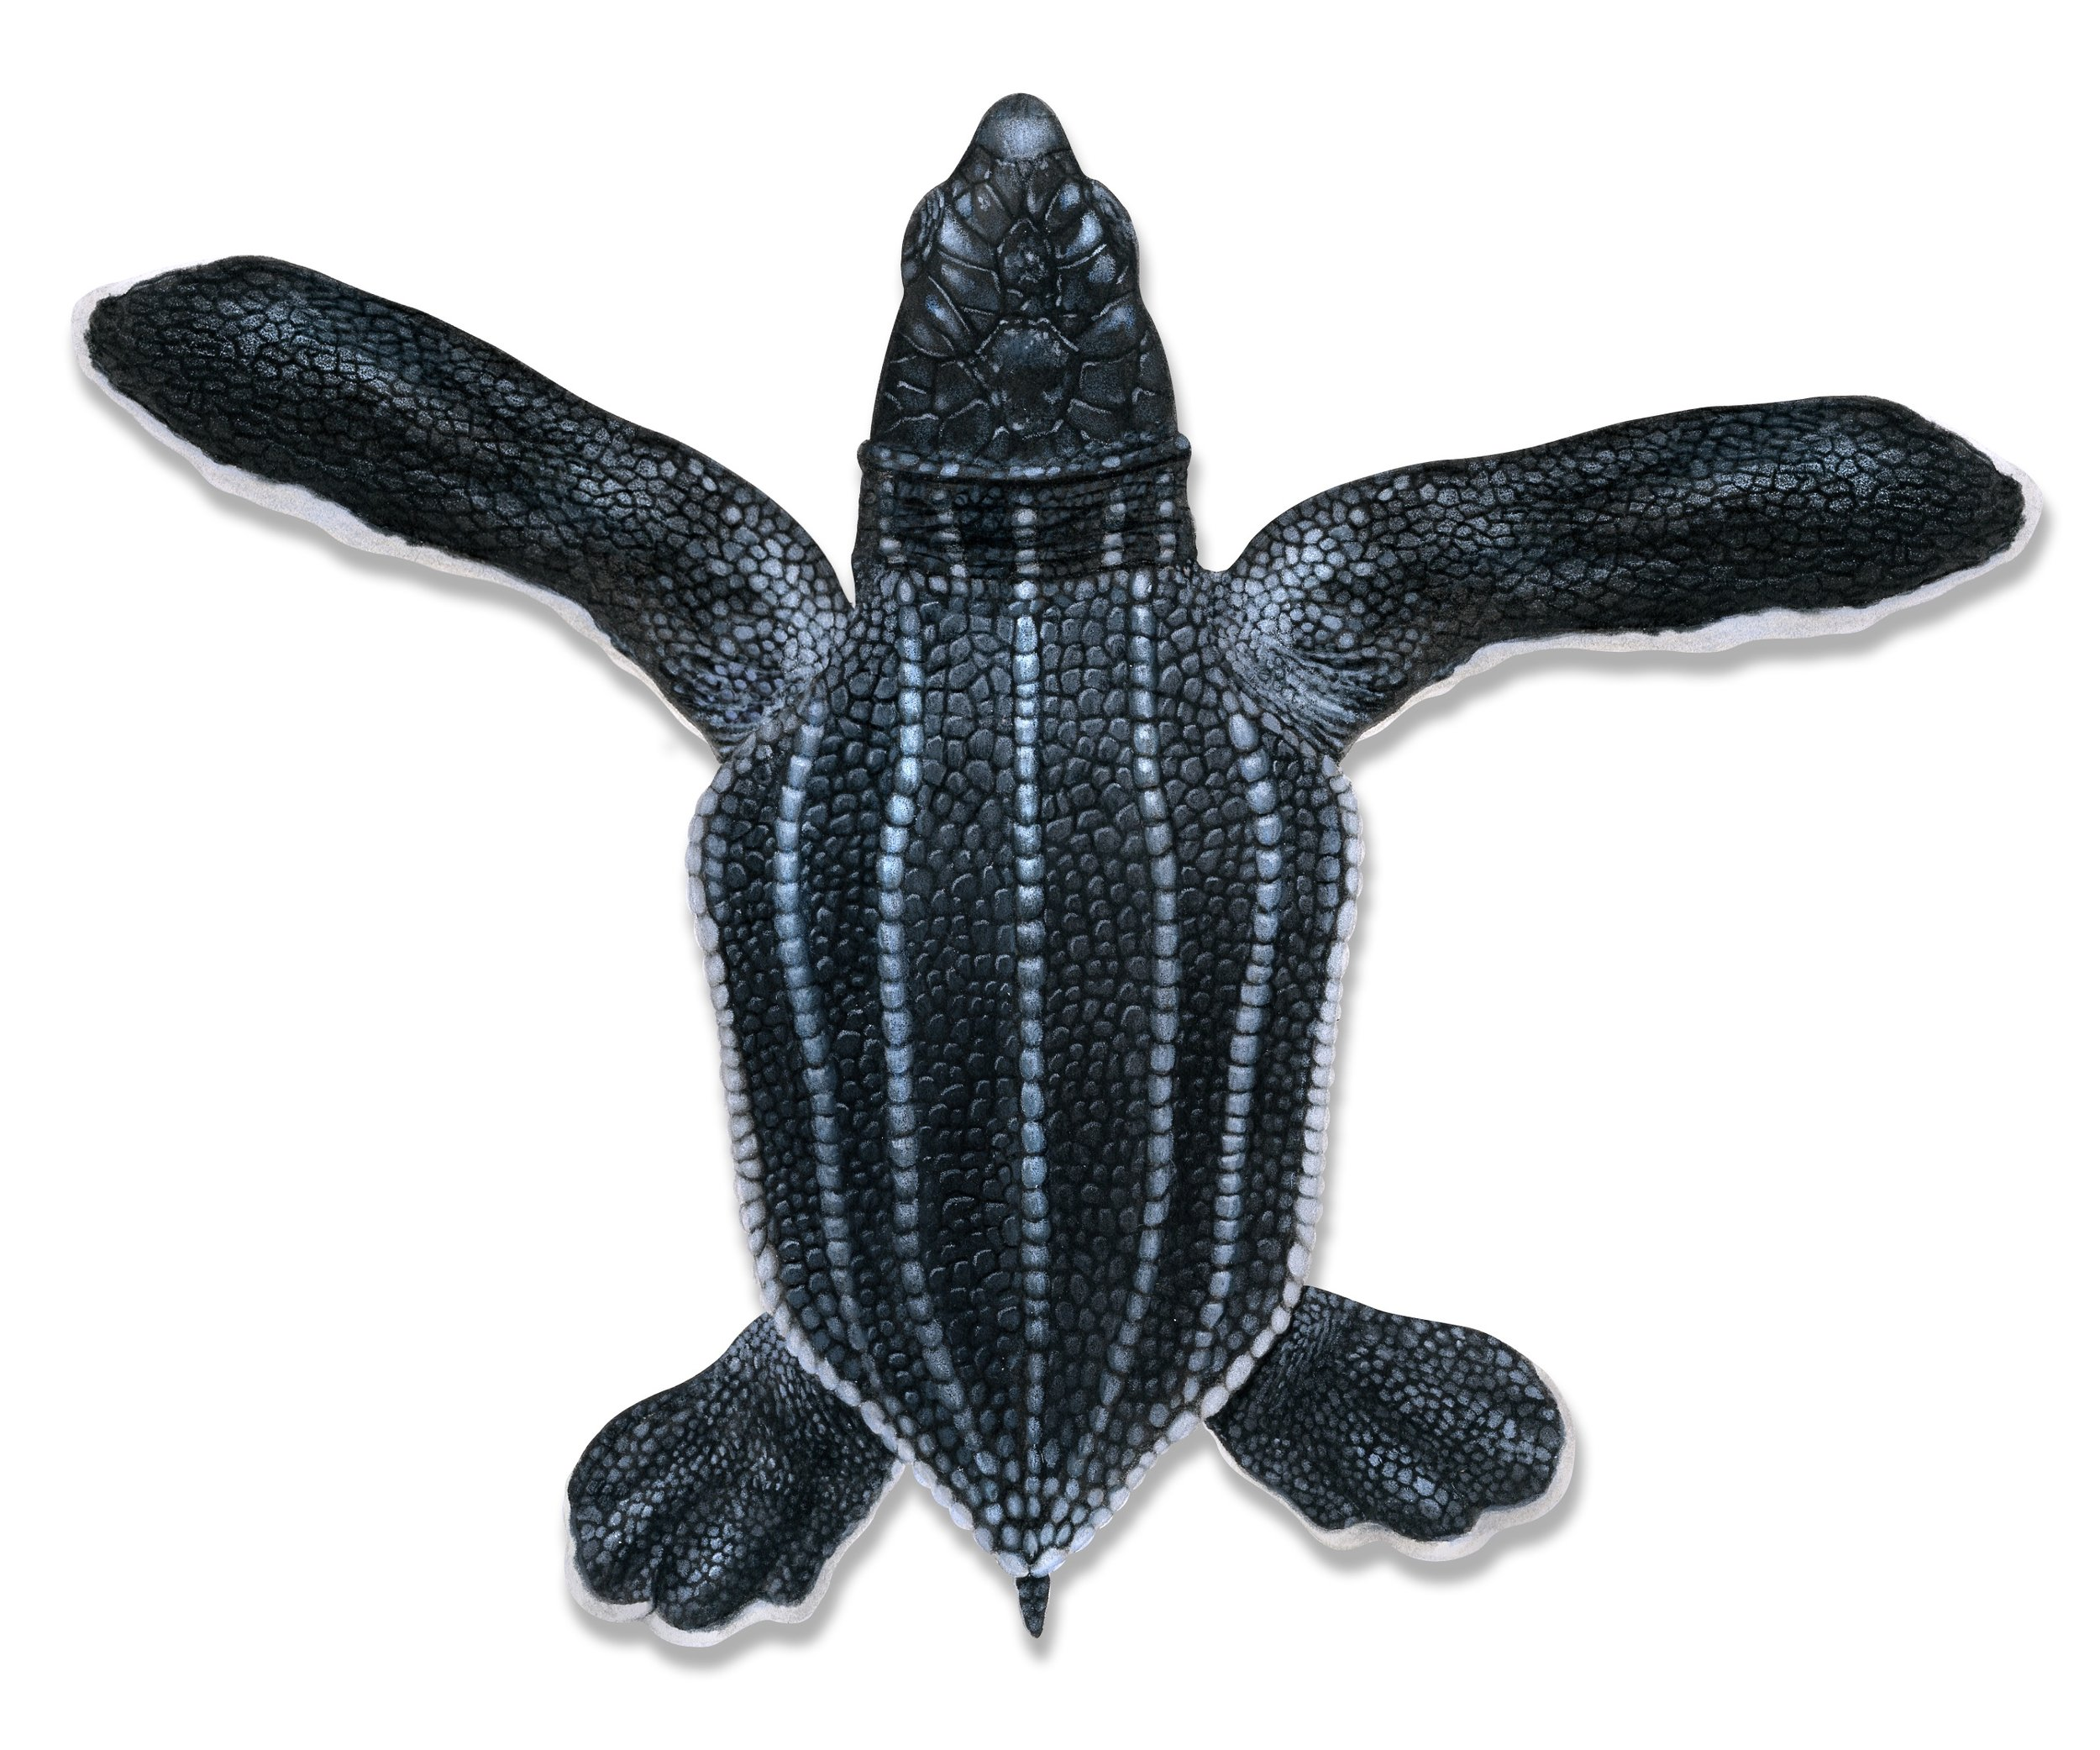 Hatchling leatherback illustration © Dawn Witherington